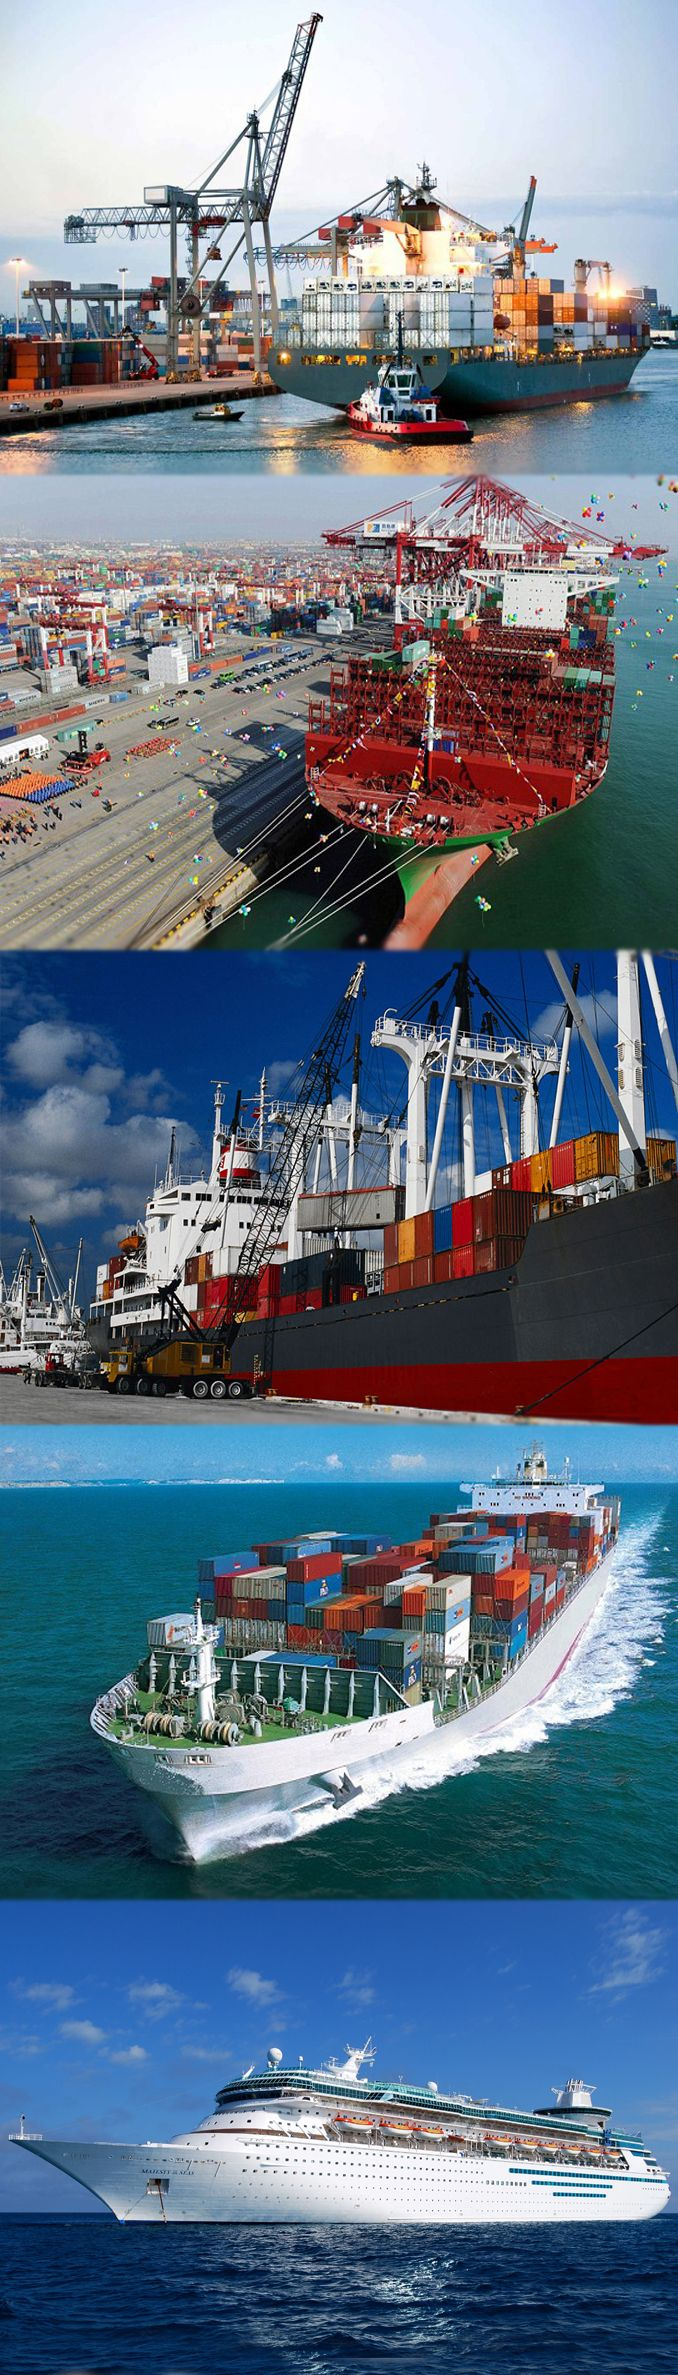 The Changes In Sea Freight Click the Link: http://www.astarcargo.co.uk/blog/the-changes-in-sea-freight/